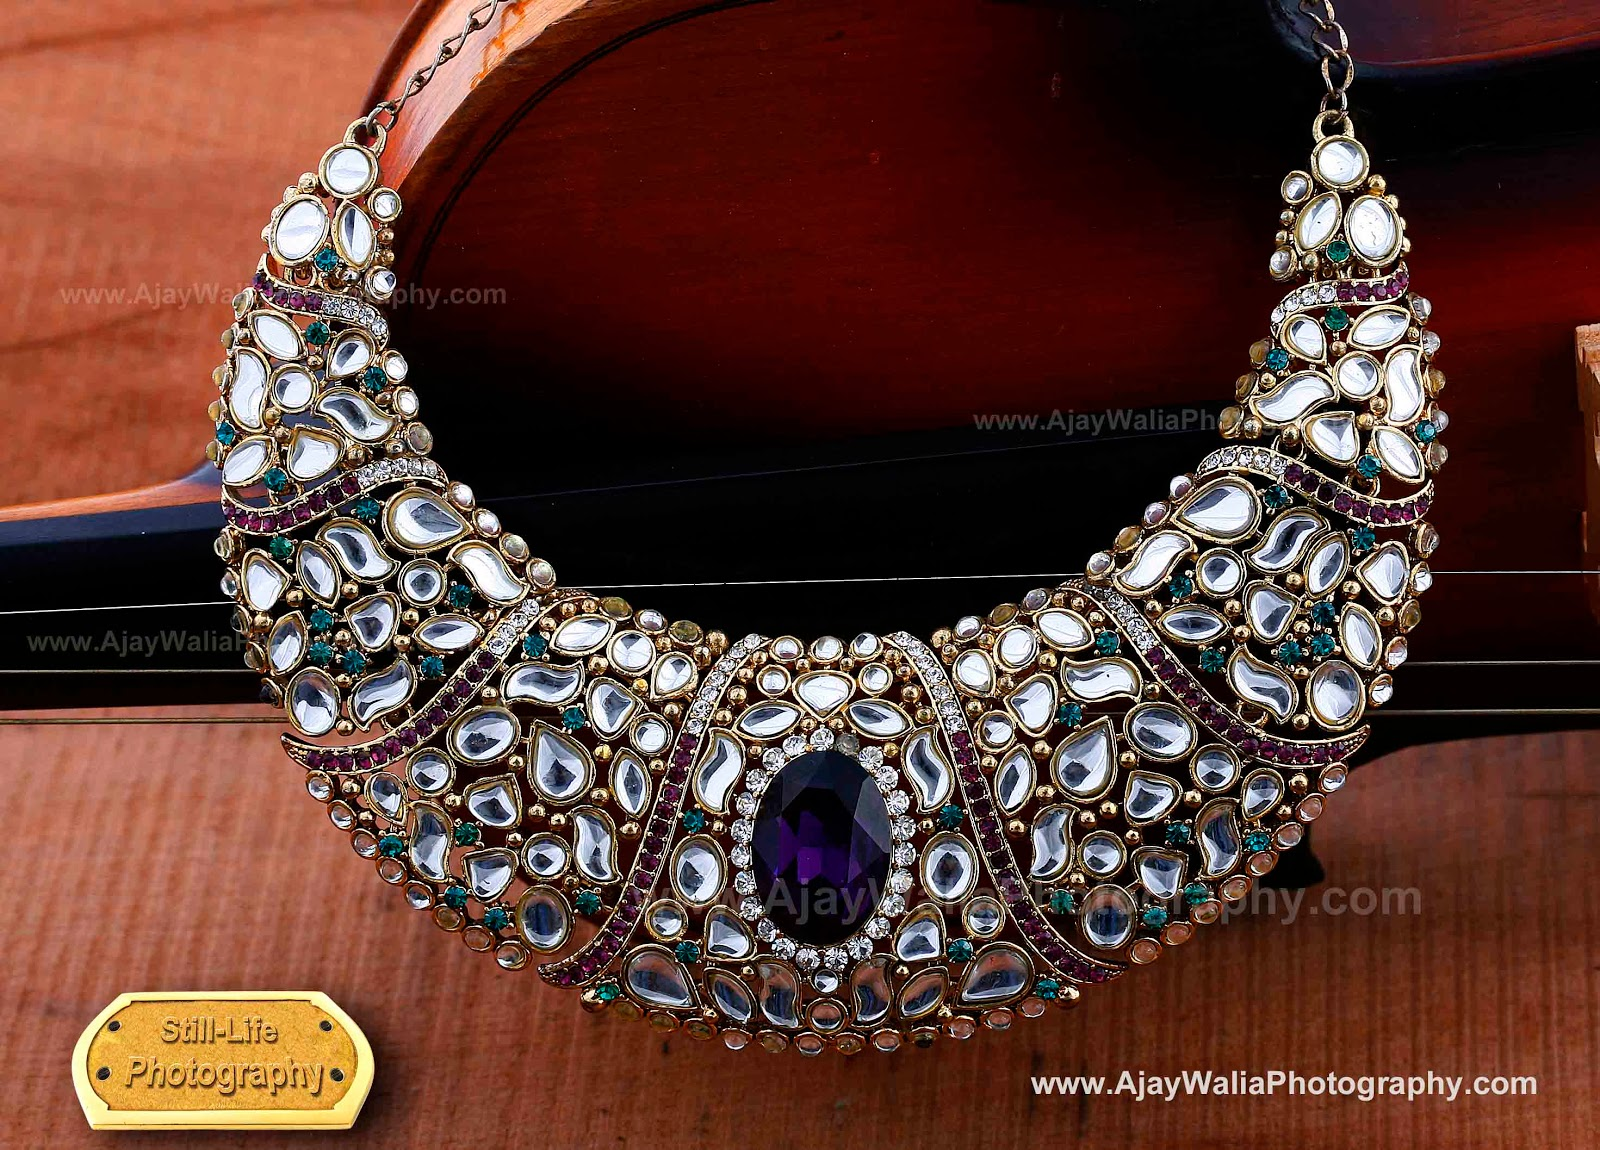 Jewellery Photography for Advertising By Ajay Walia Photography